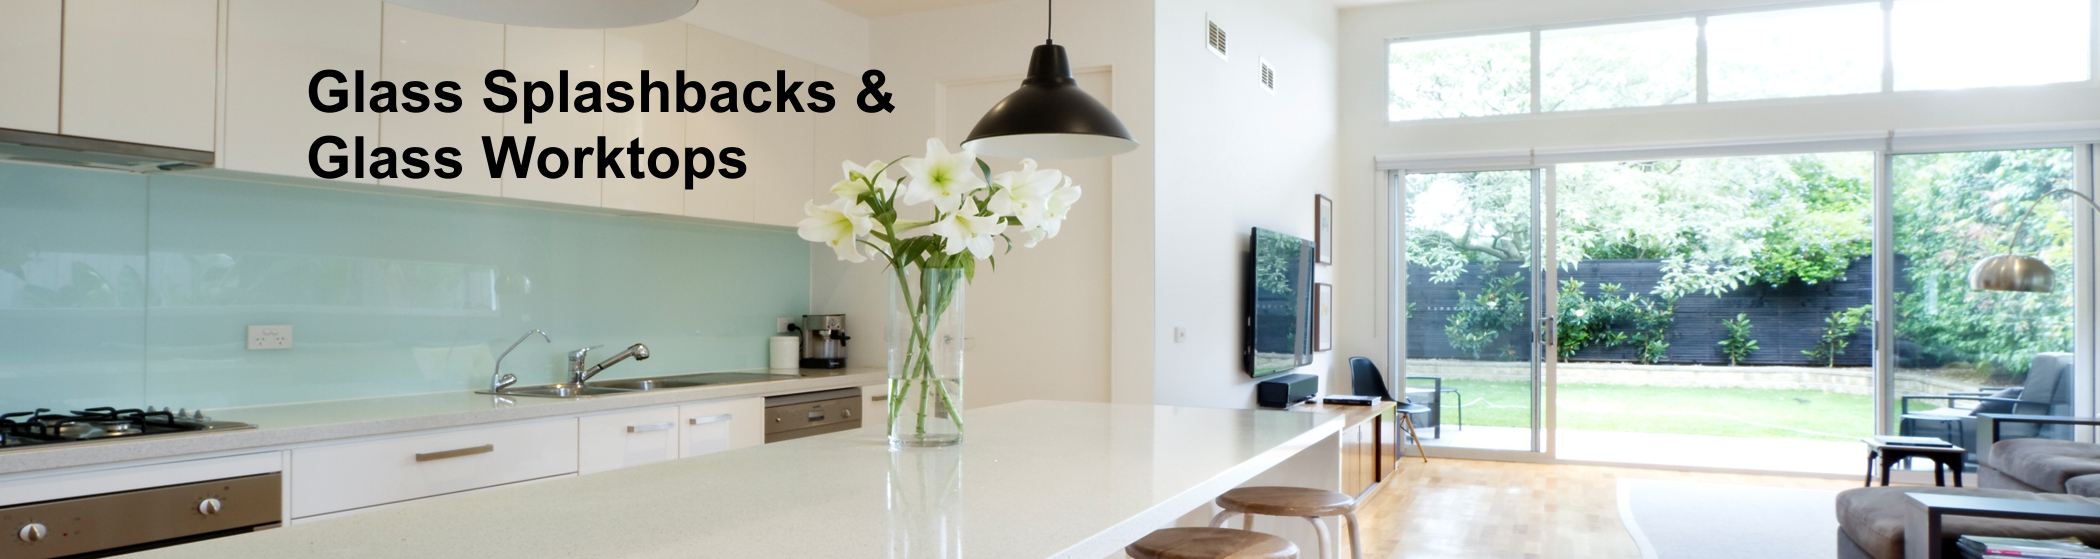 Glass Worktops / Splashbacks | Empire Glazing Kitchens Windows Glass ...